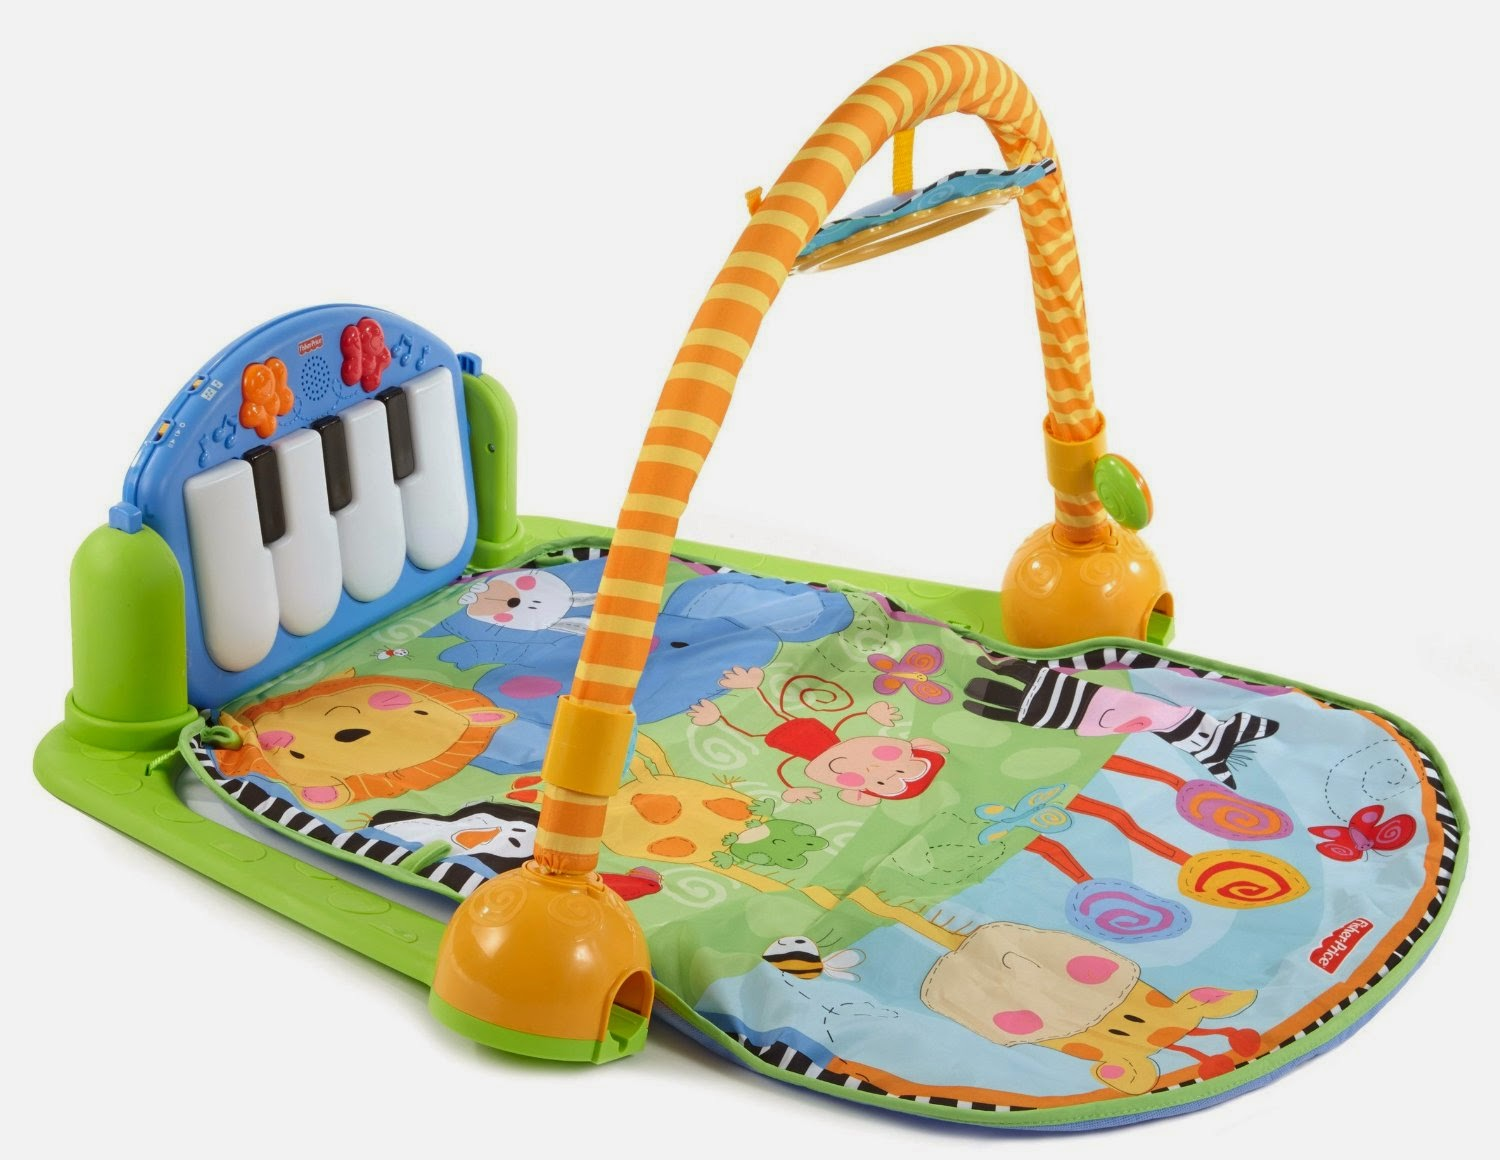 https://www.amazon.com/Fisher-Price-Kick-Play-Piano-Discover/dp/B00CWN3FNM/ref=as_li_ss_til?tag=soutsubusavi-20&linkCode=w01&creativeASIN=B00CWN3FNM